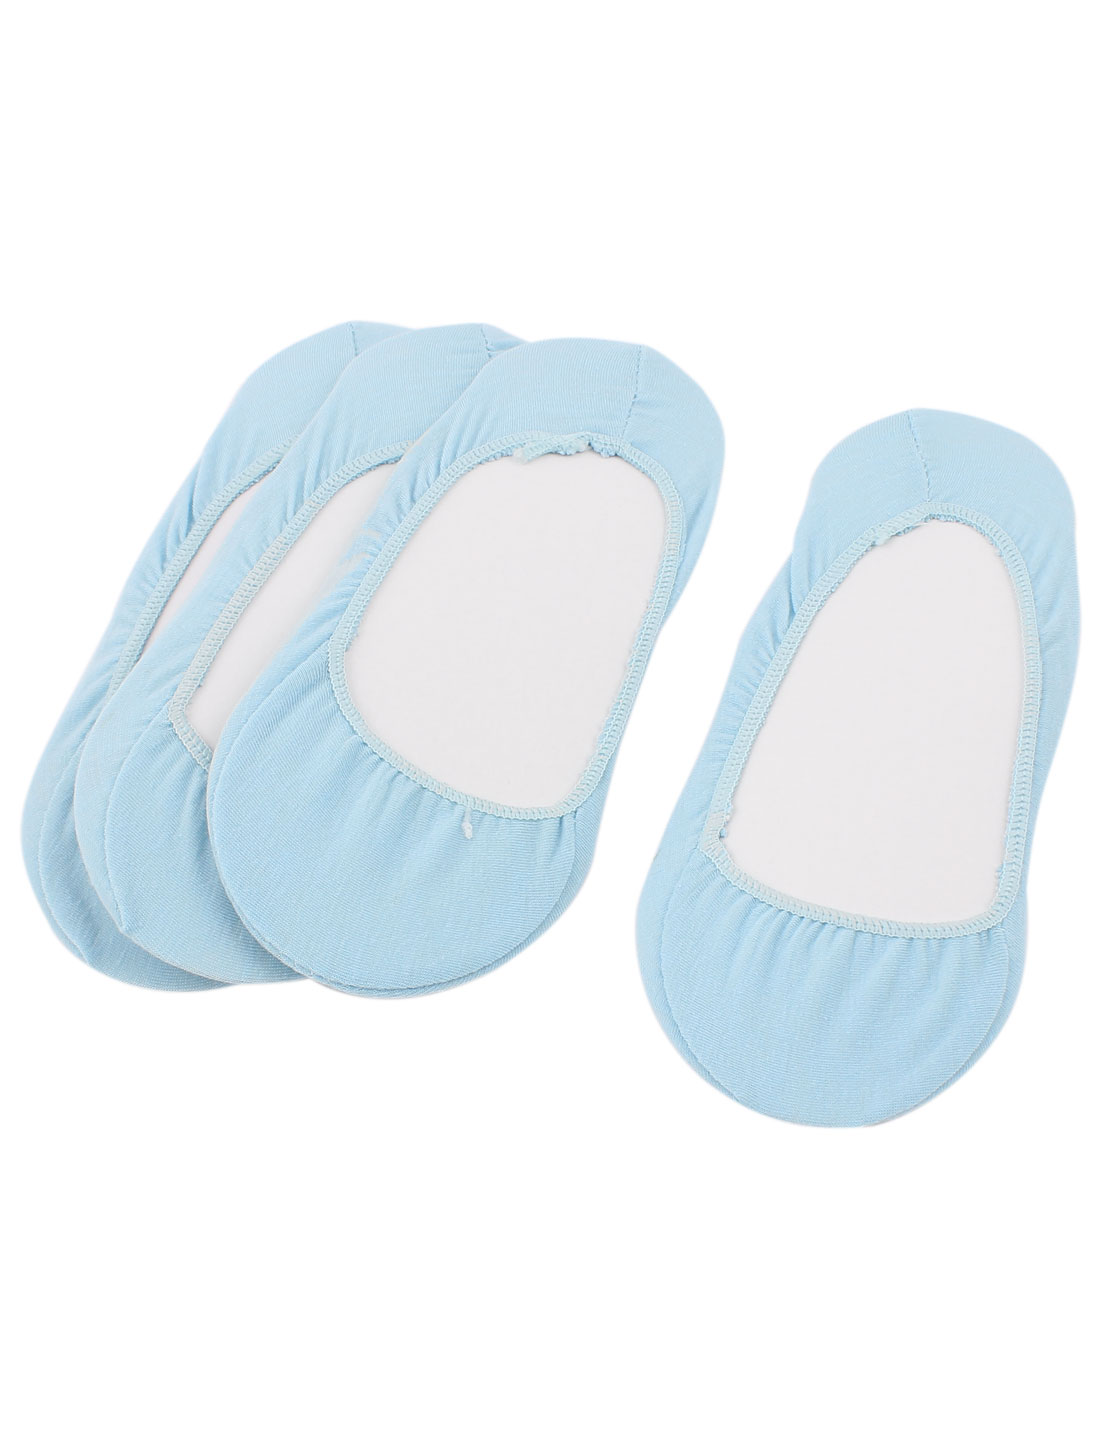 4Pairs Summer Sky Blue Cotton Blends Elastic Cuff Short Low Cut Slipper Heels Footsie Invisible Boat Socks for Women